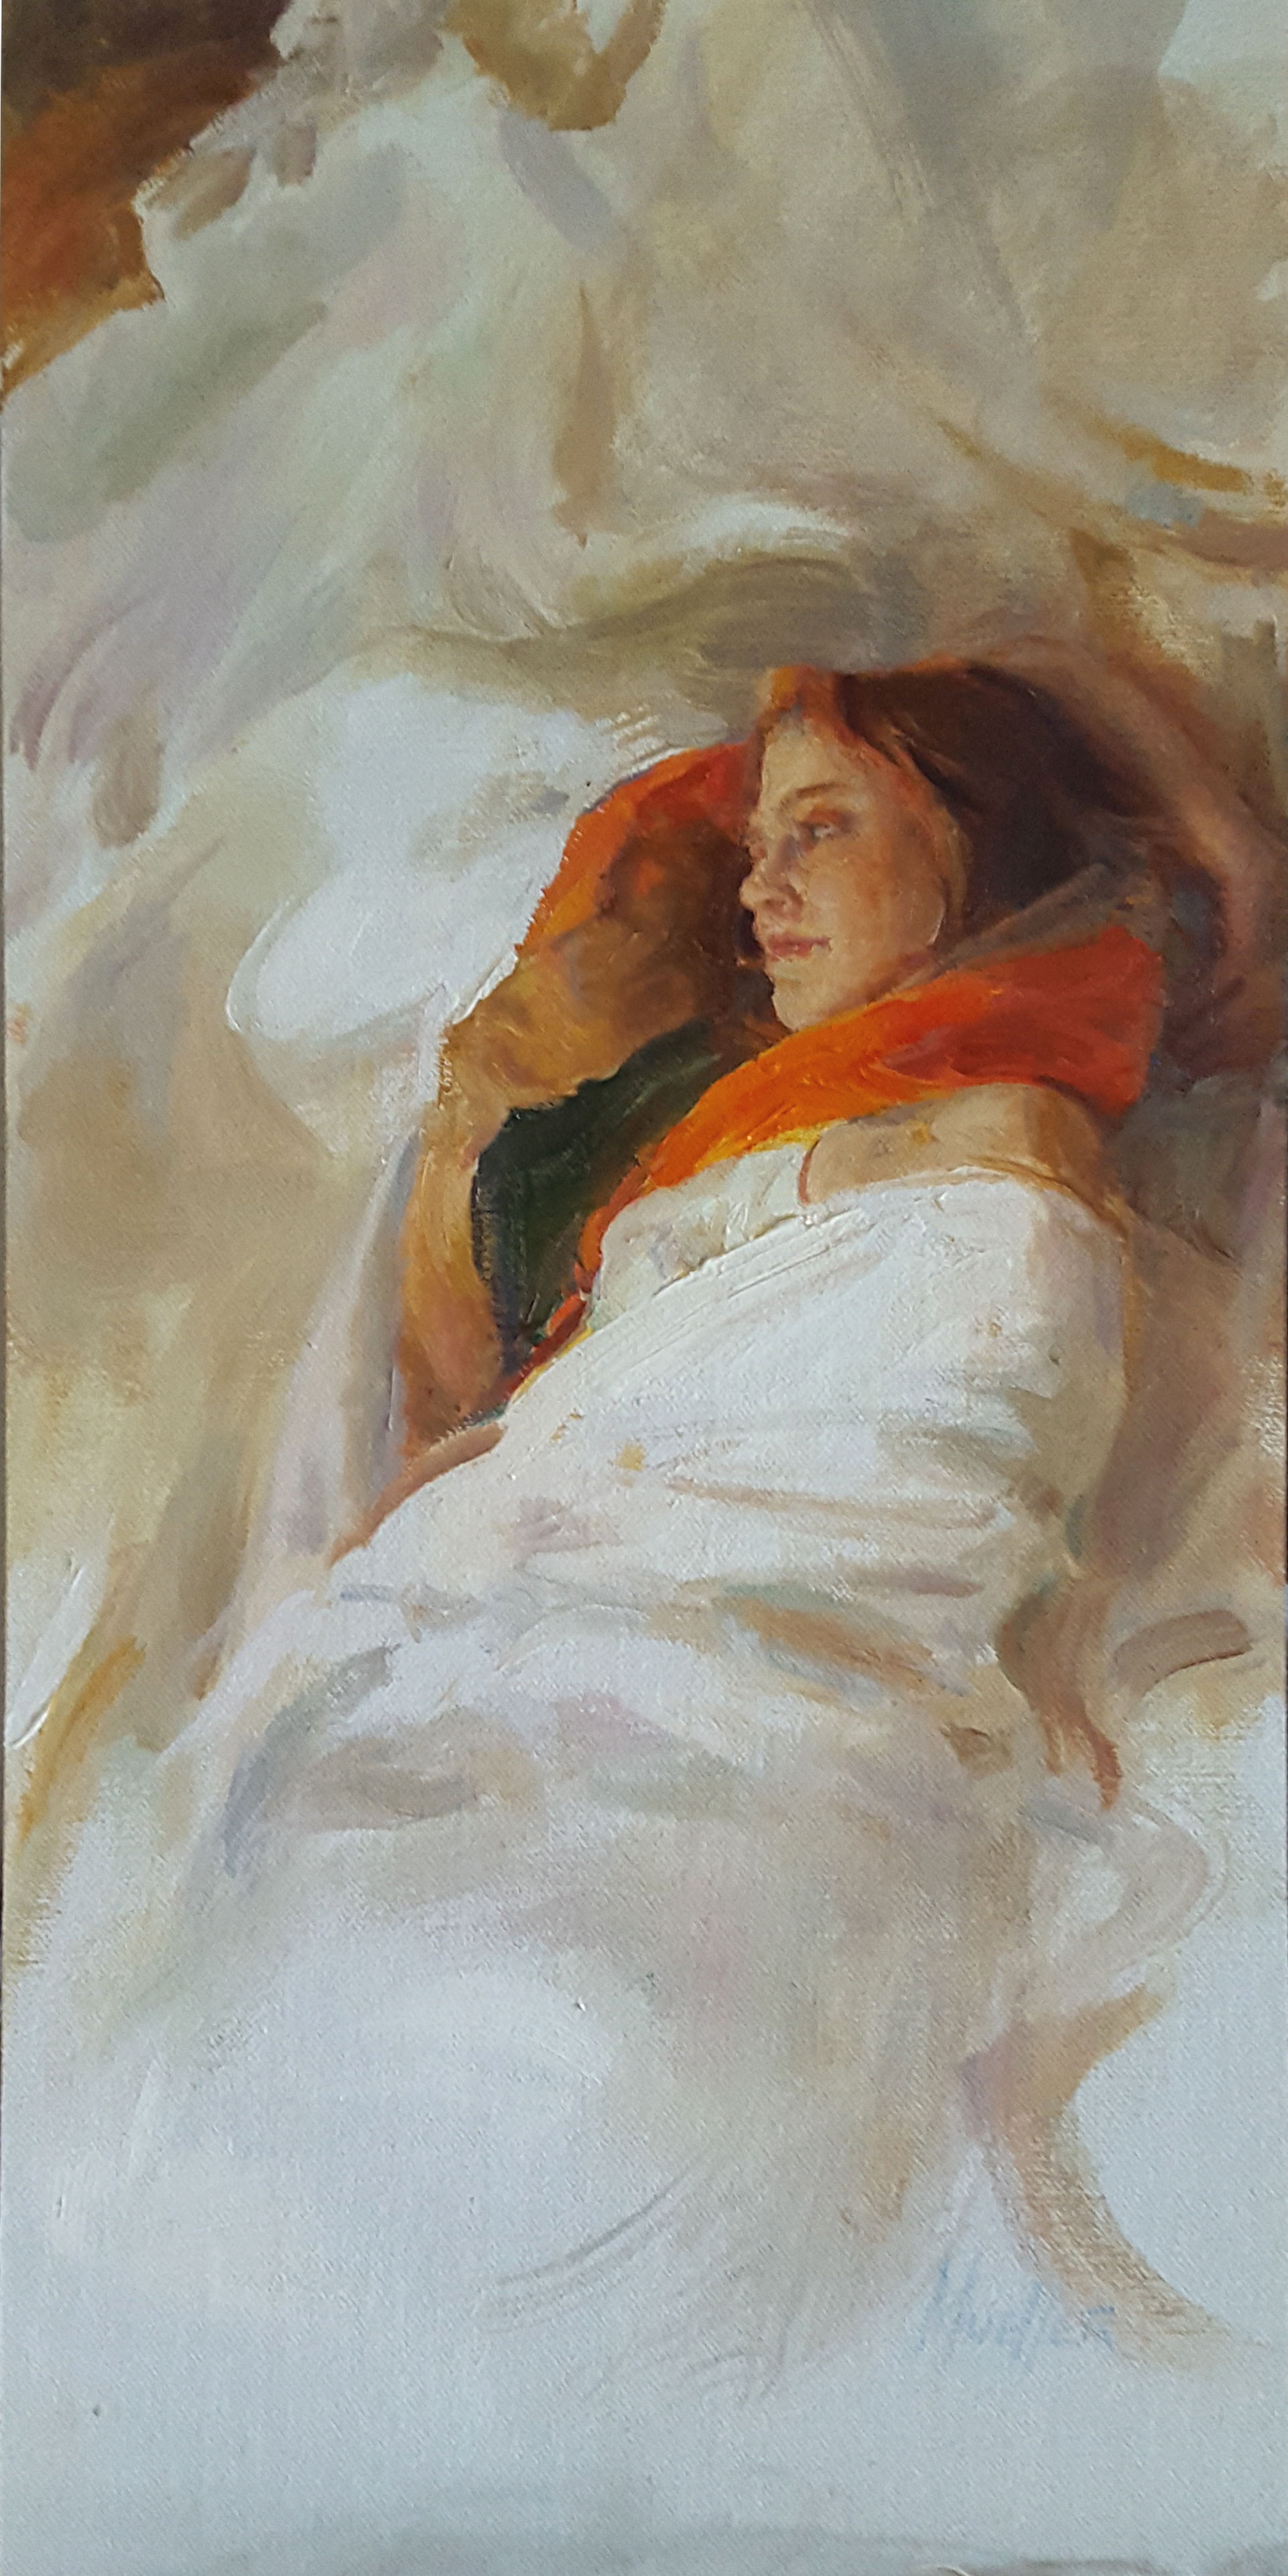 reclining on white 16 x 8""